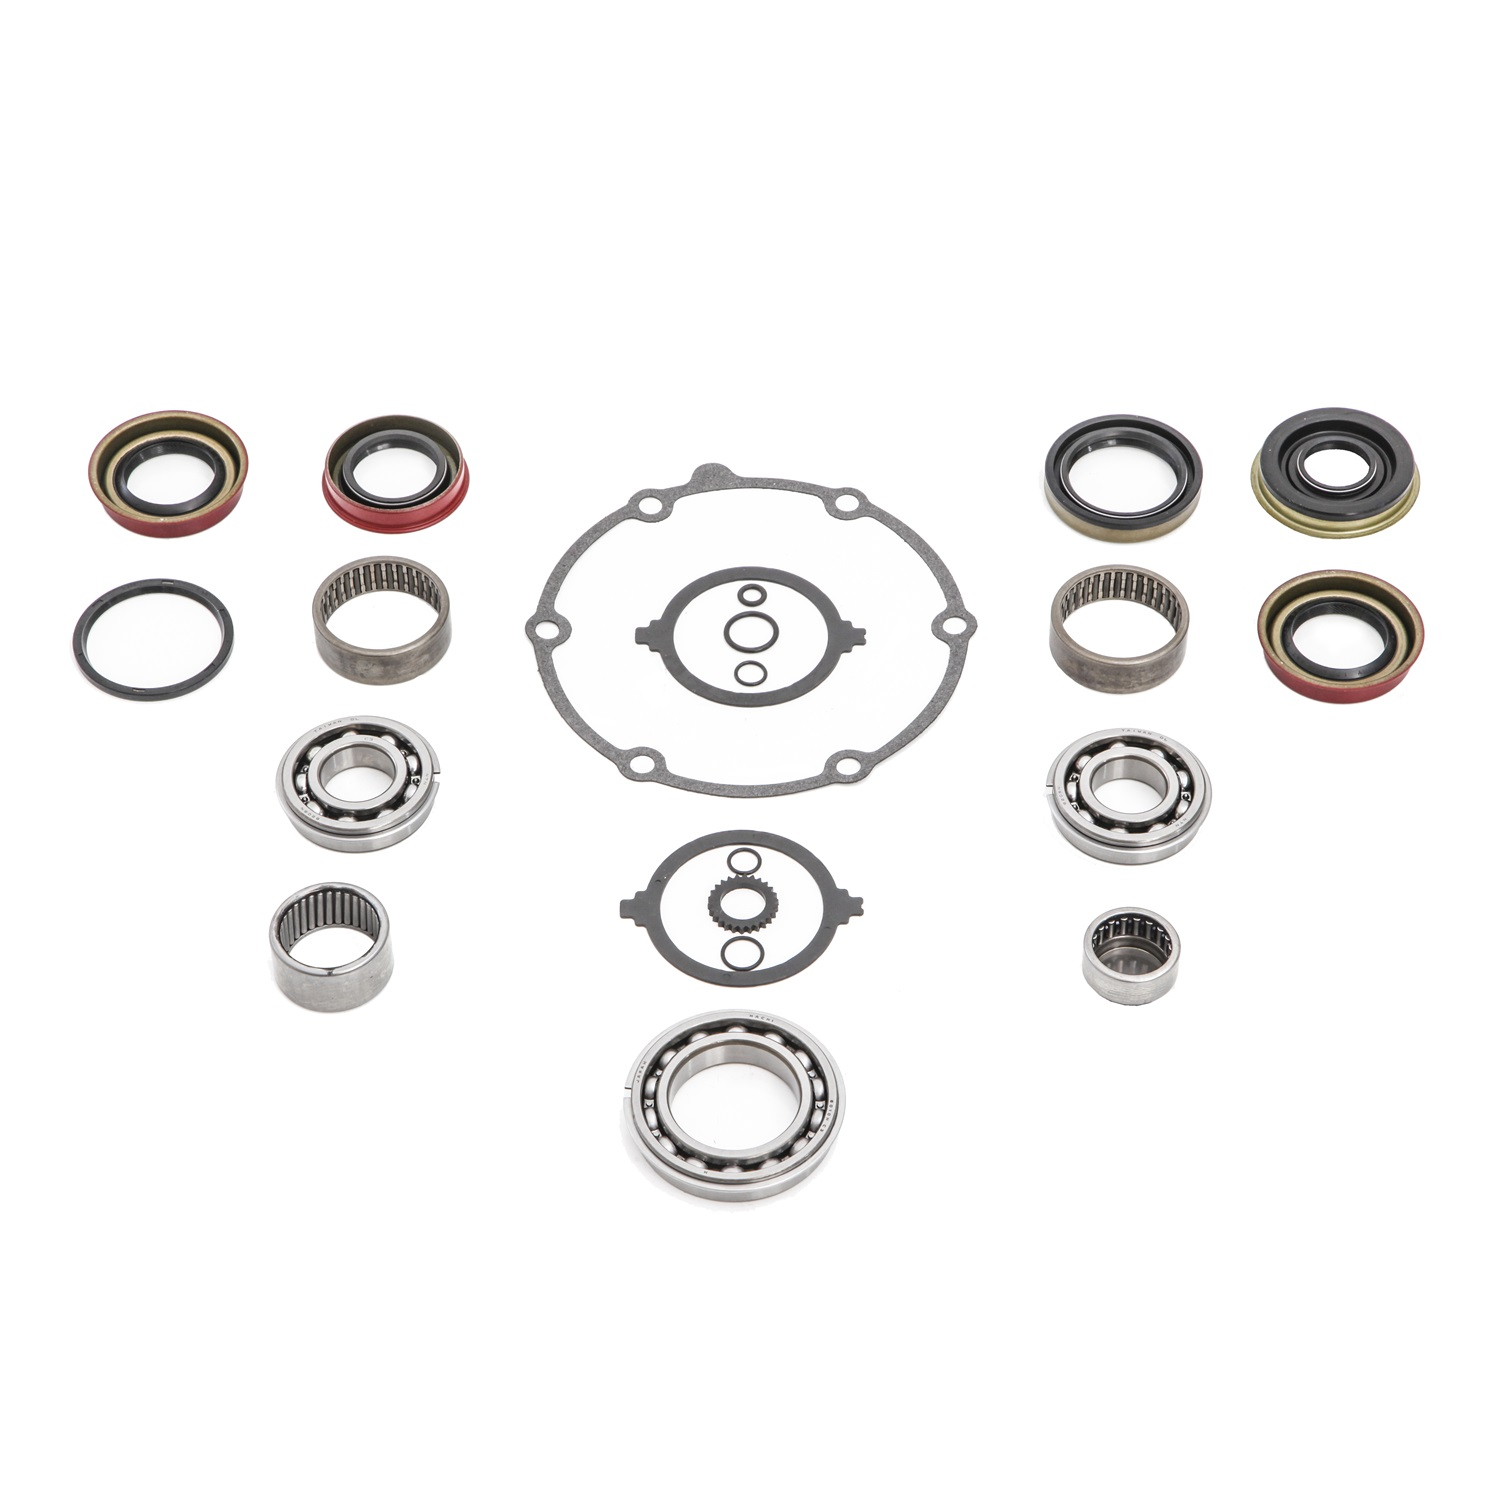 Parts For Fire Pits